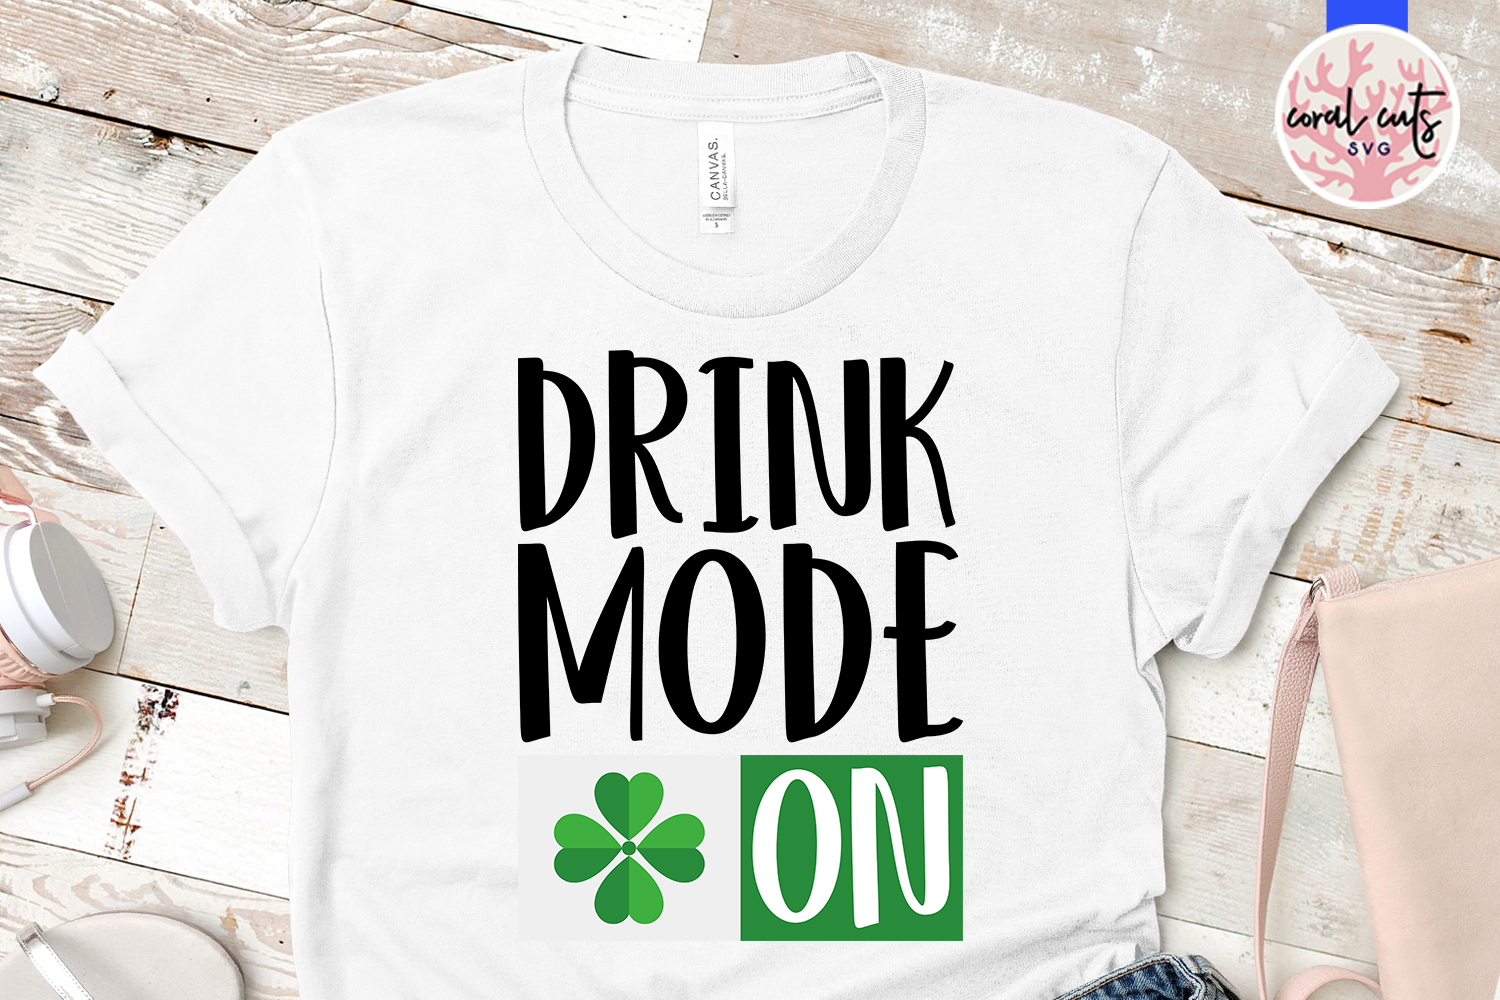 Drunk mode on - St. Patrick's Day SVG EPS DXF PNG example image 2